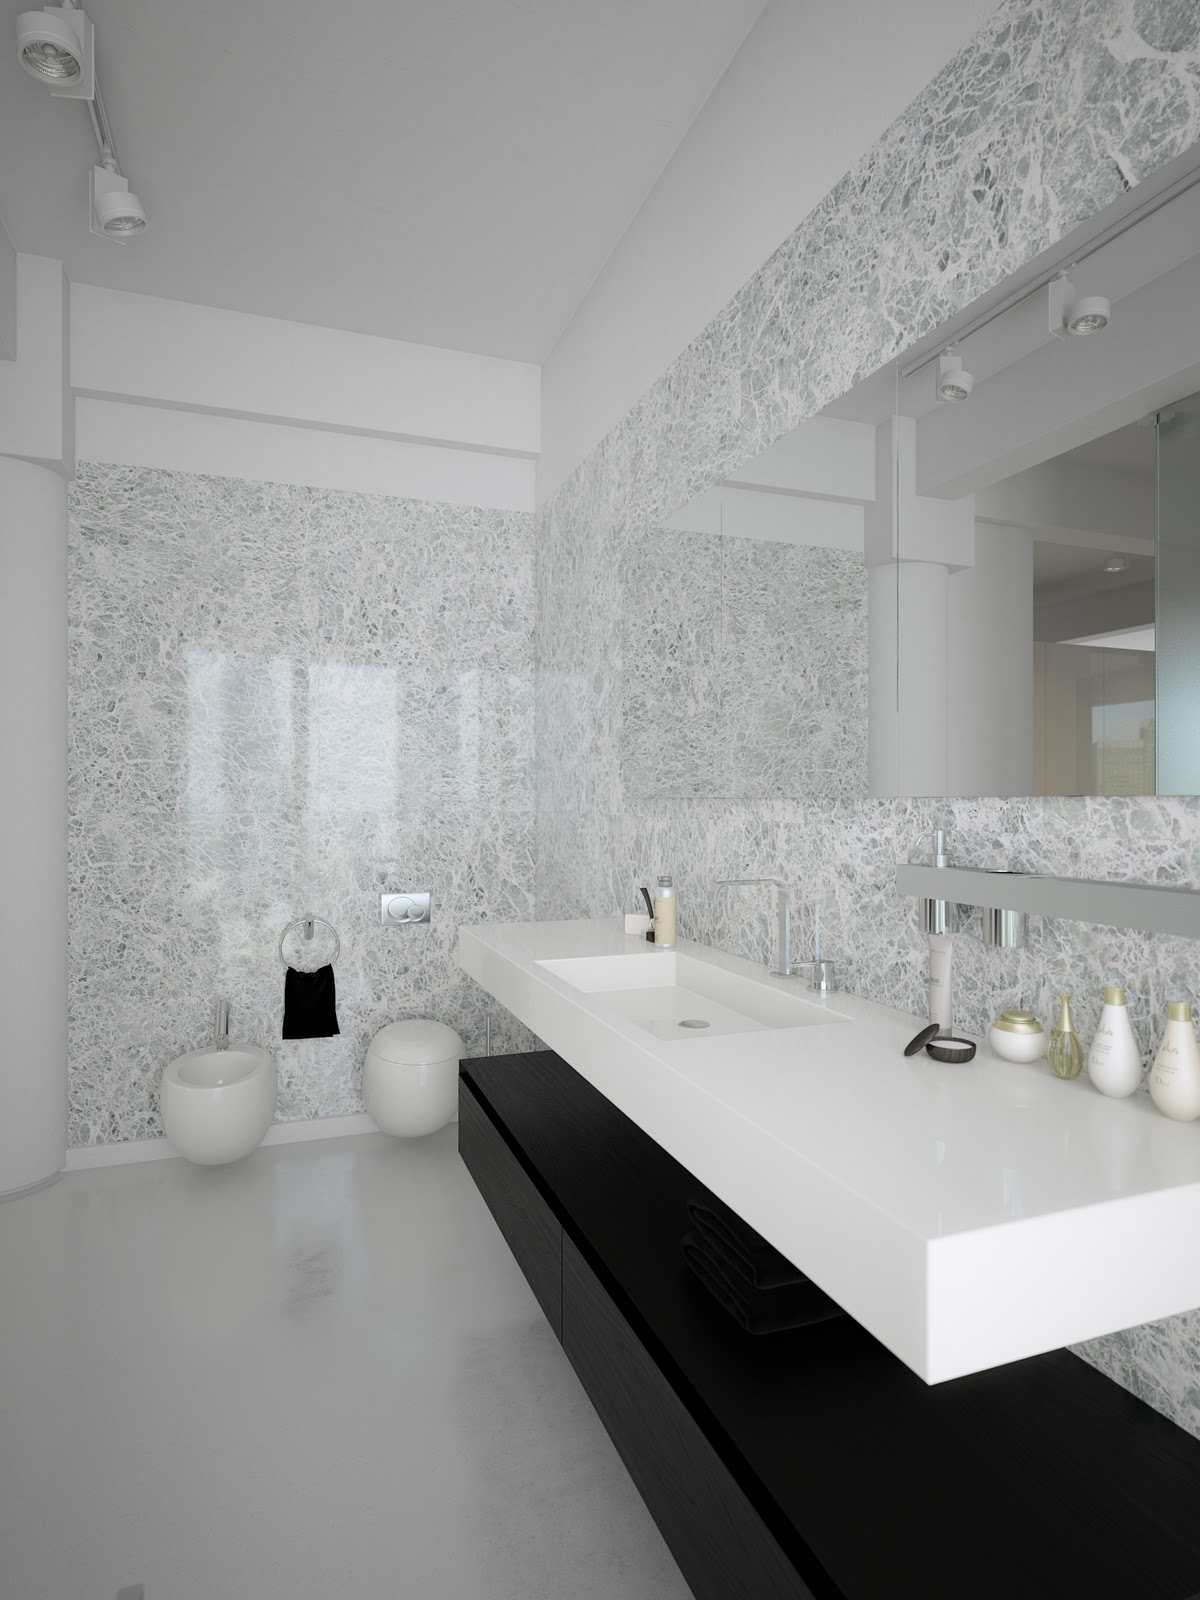 25 contemporary bathroom design ideas decoration love - White bathroom ideas photo gallery ...